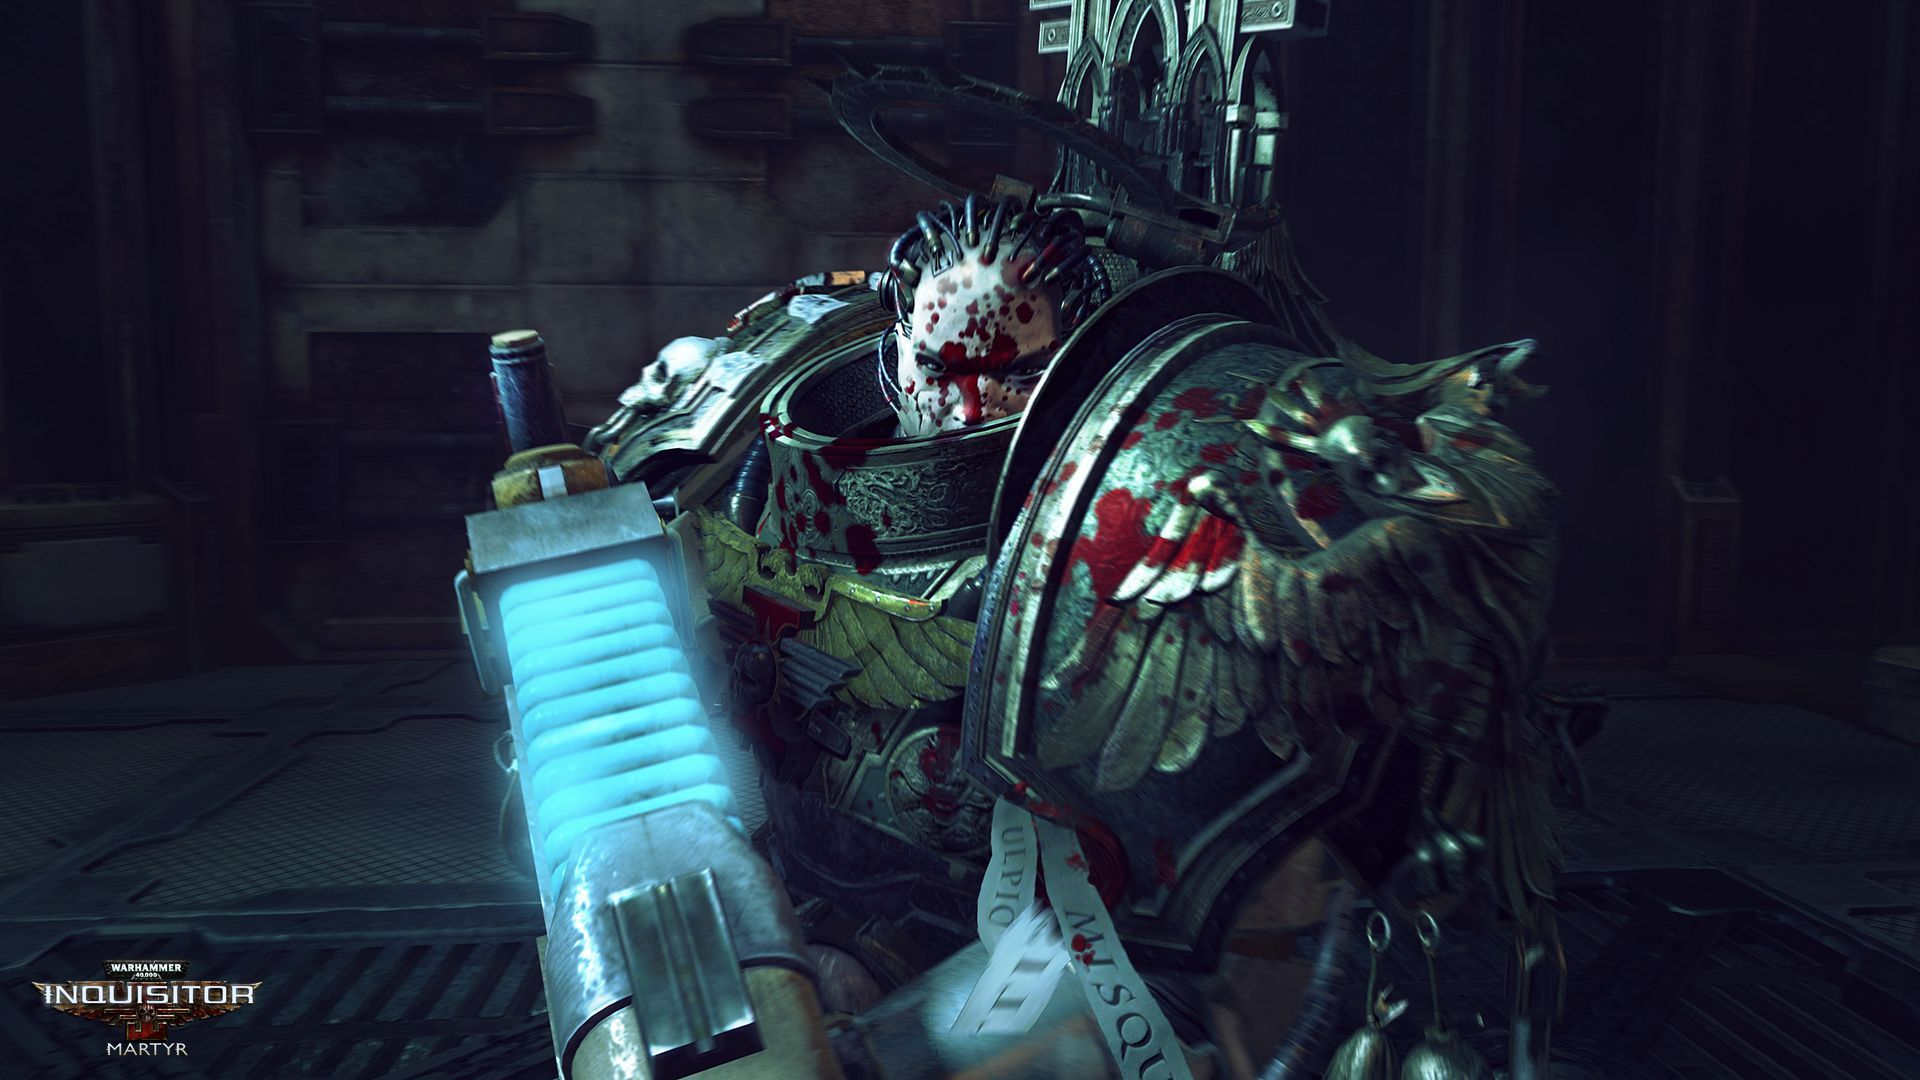 Warhammer 40,000 Inquisitor Martyr (PS4) - 7